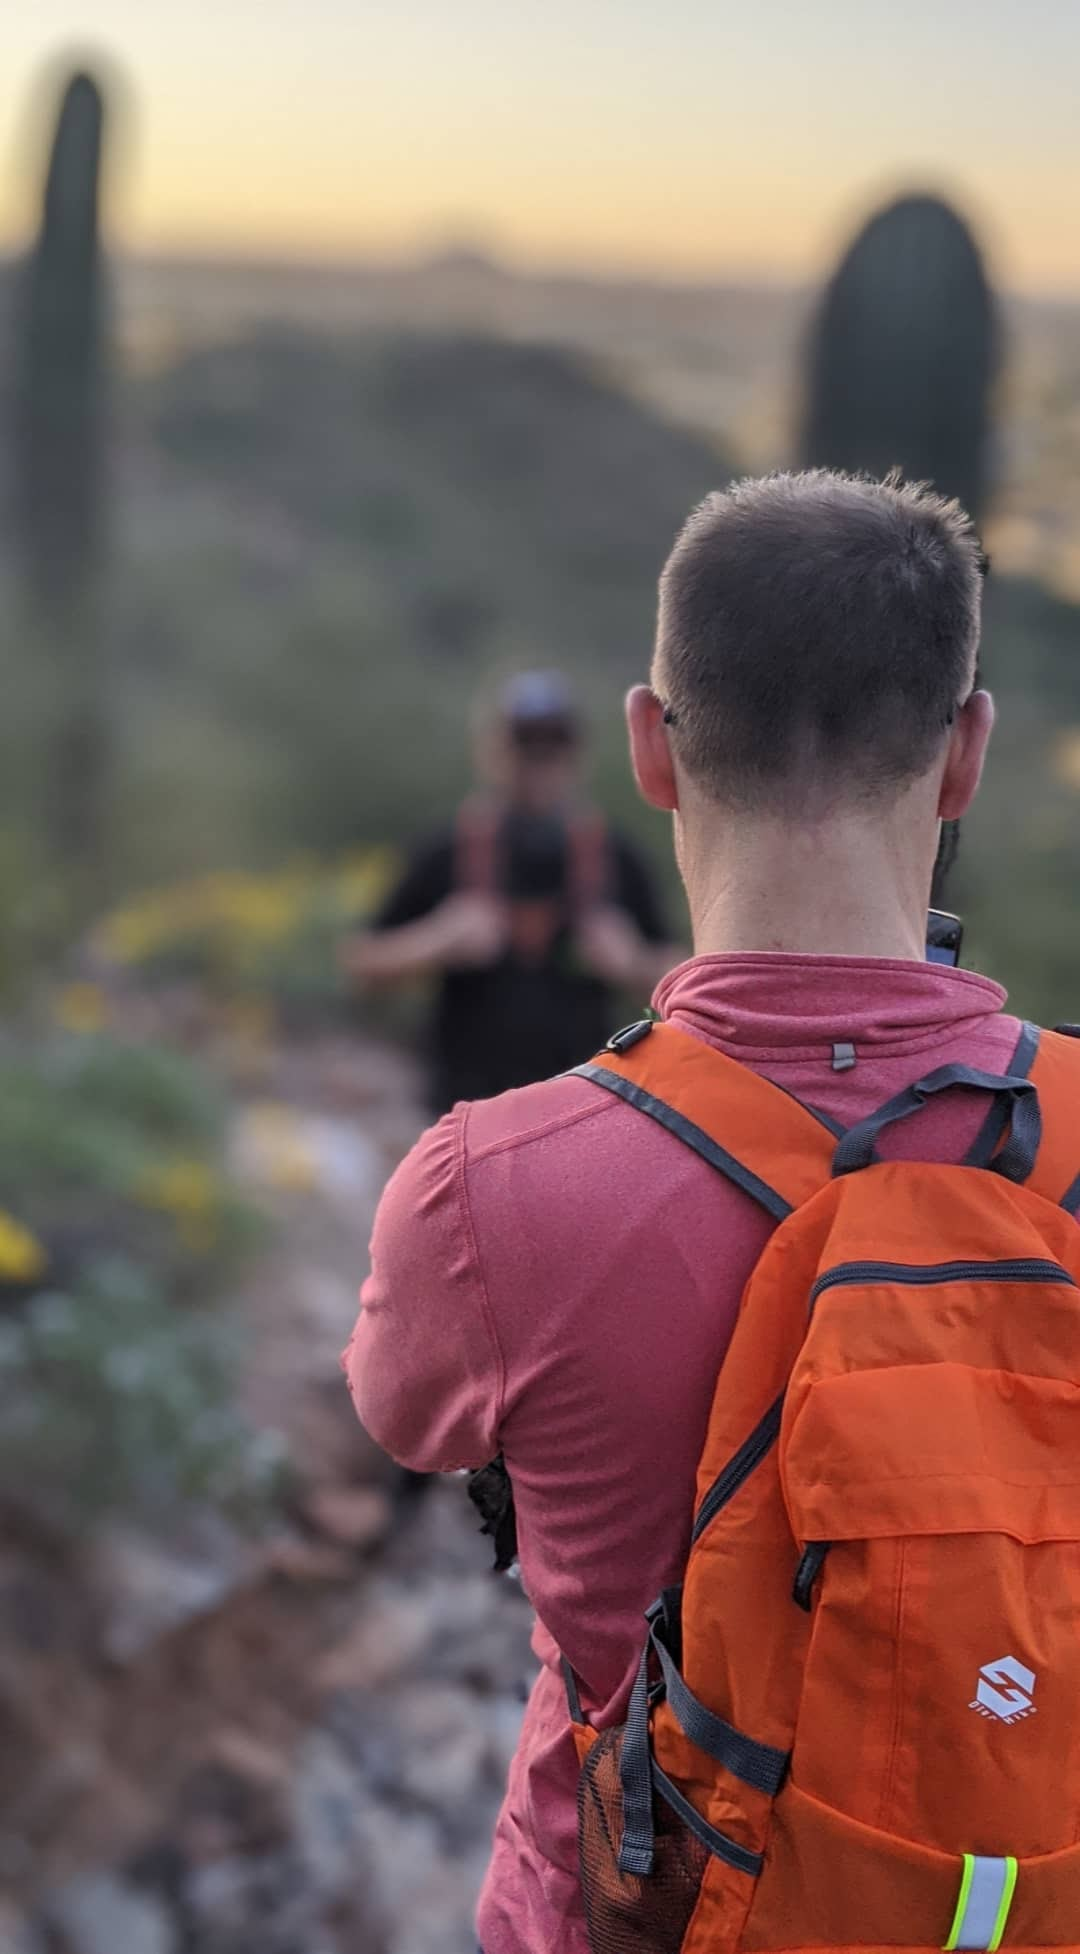 A hiker listens intently to his Wild Bunch guide during a group hike on a particularly majestic Phoenix hiking trail.